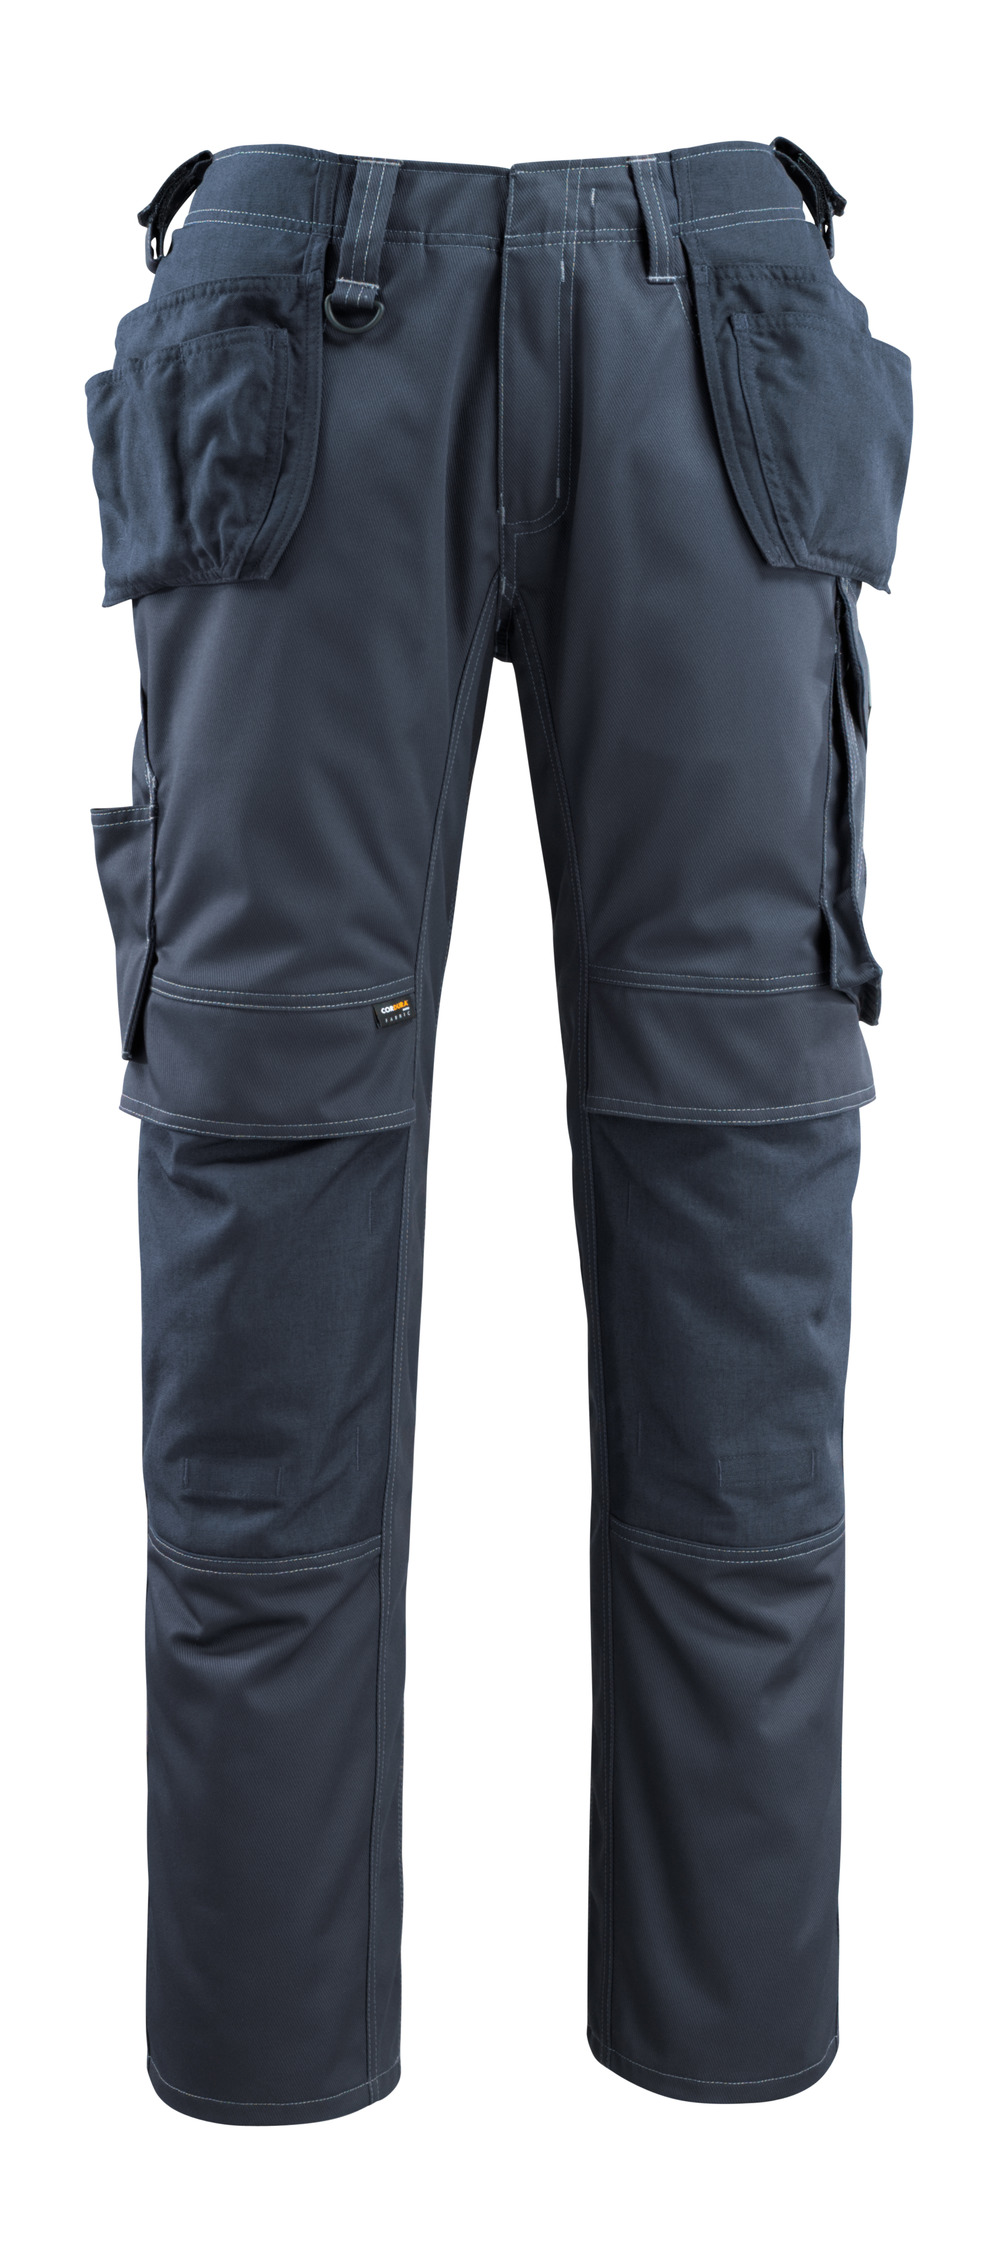 14131-203-010 Pants with kneepad pockets and holster pockets - dark navy